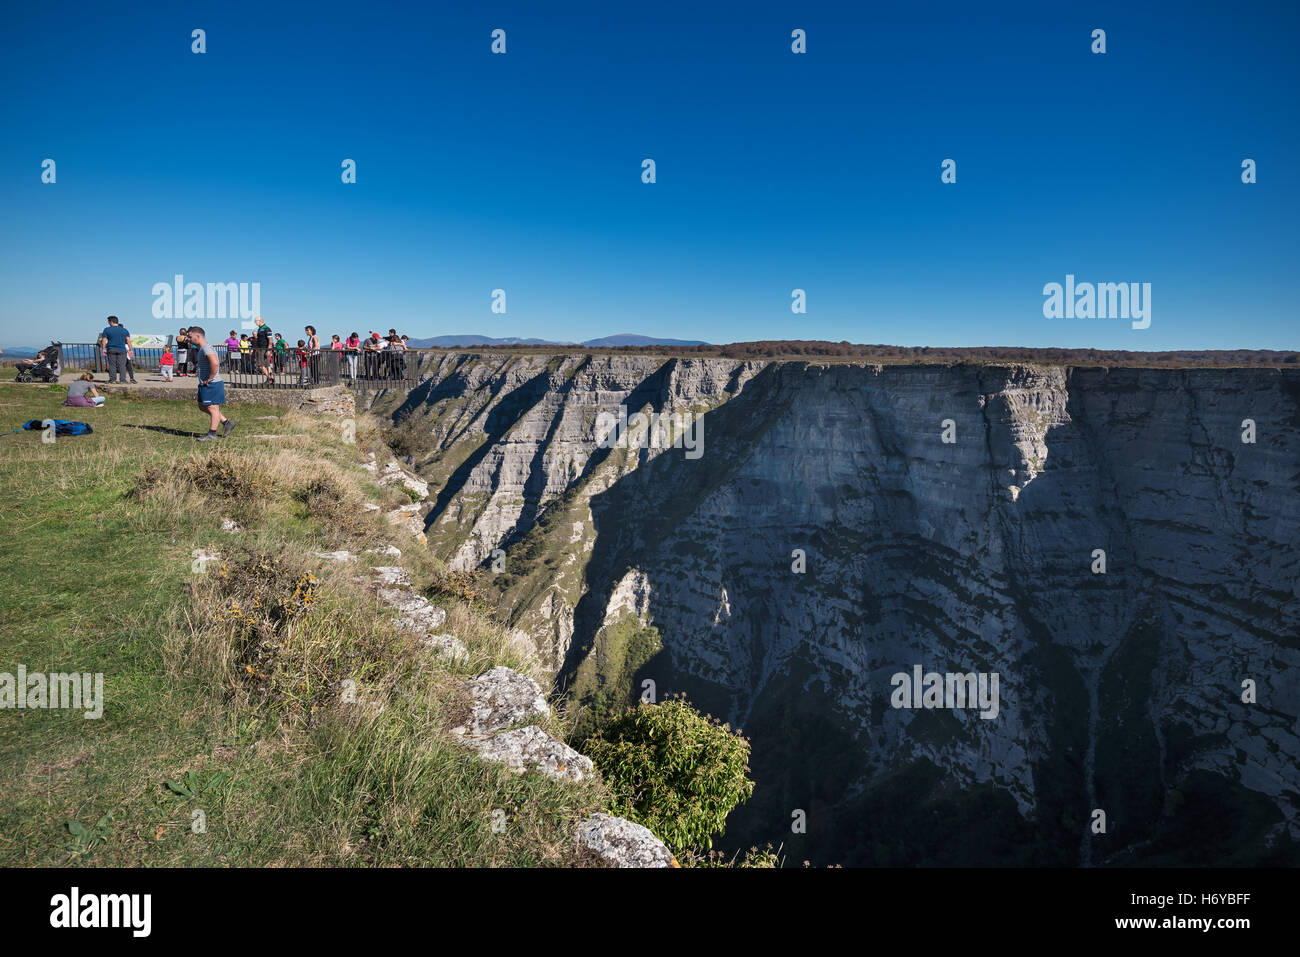 BURGOS, SPAIN - OCTOBER 29: Tourist visiting famous viewpoint Salto del nervion on October 29,2016 in Burgos, Spain. - Stock Image